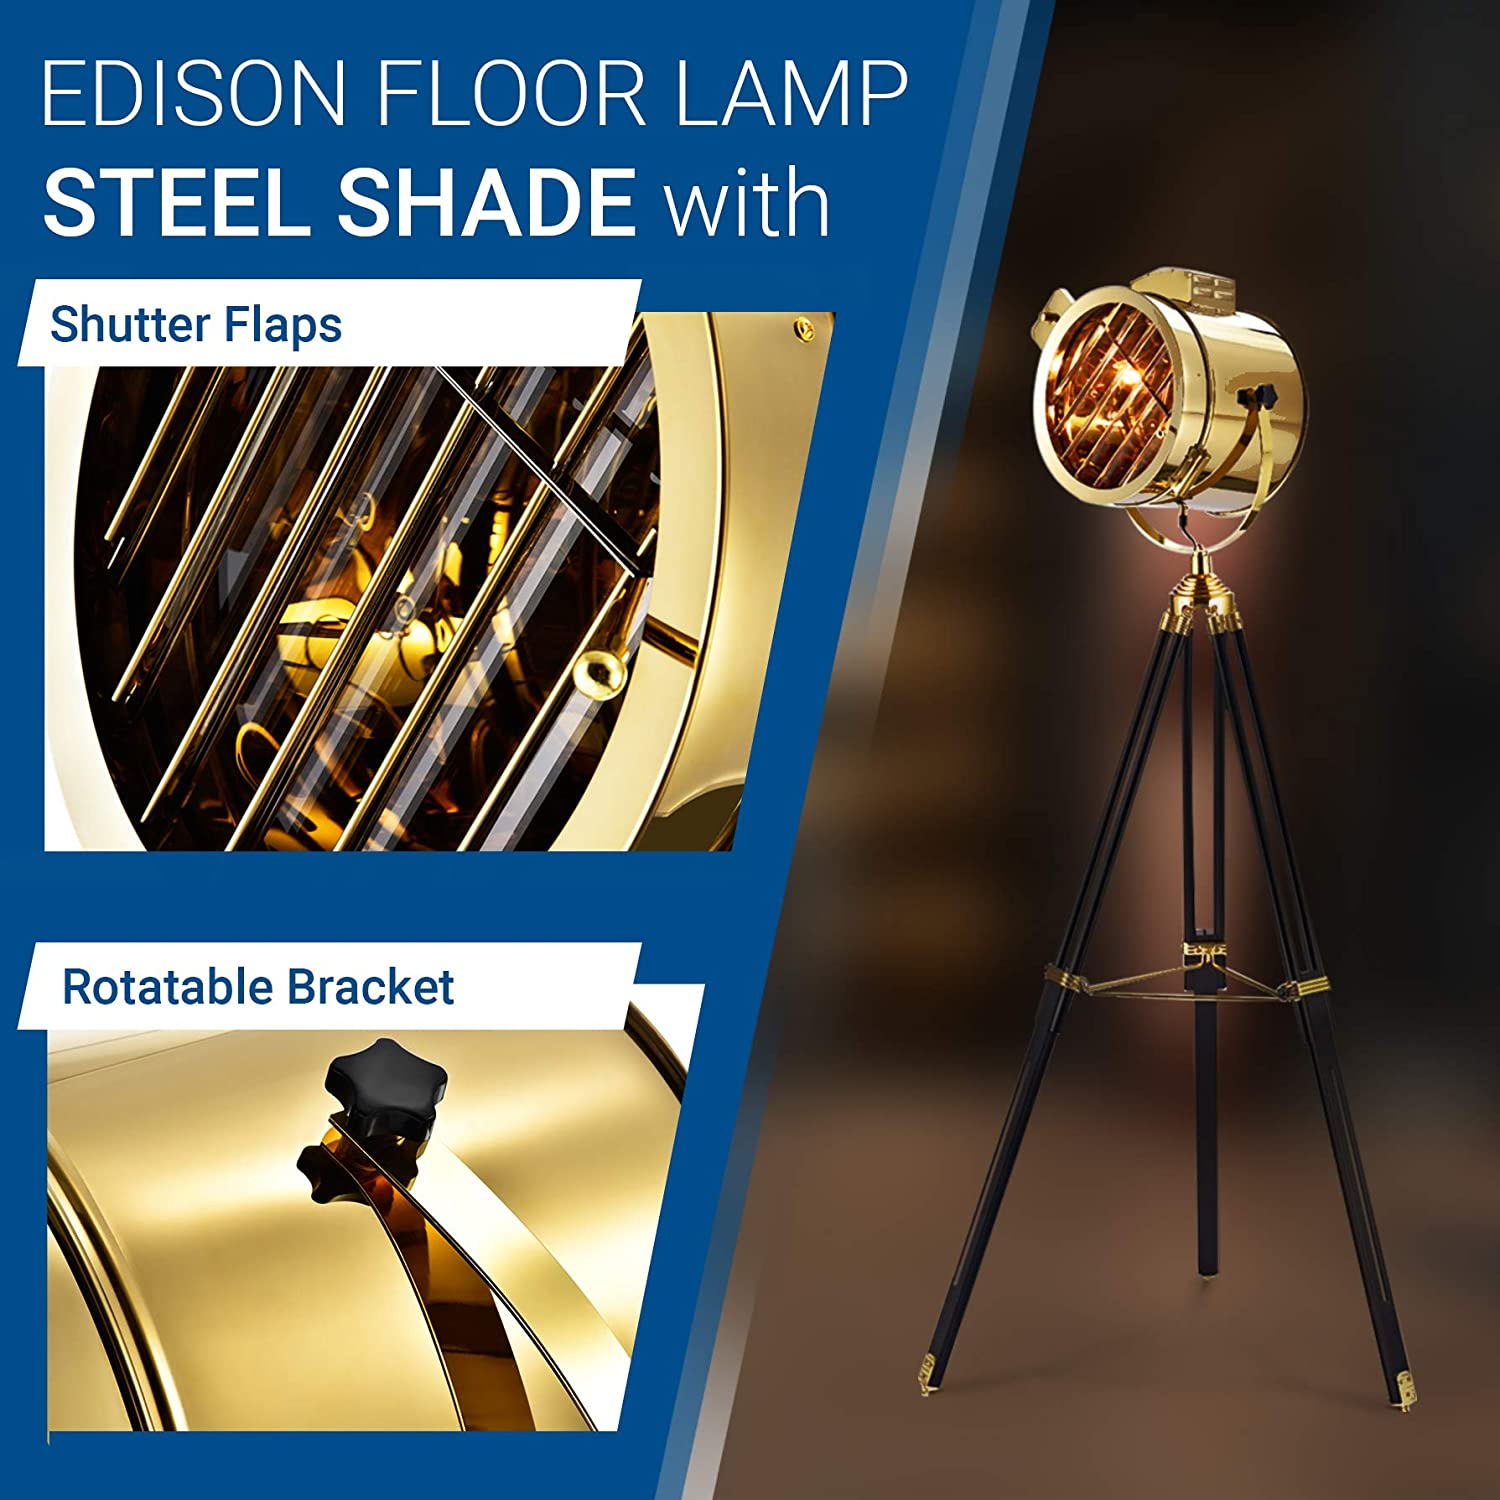 E26 Searchlight Floor Lamp Tripod Light Inc. Tripod Not Included Edison Shade 110V Hyperikon Marine Floor Lamp 12.6-inch Gold Steel Shader for Nautical Light Stand Retro Industrial Floor Lamp